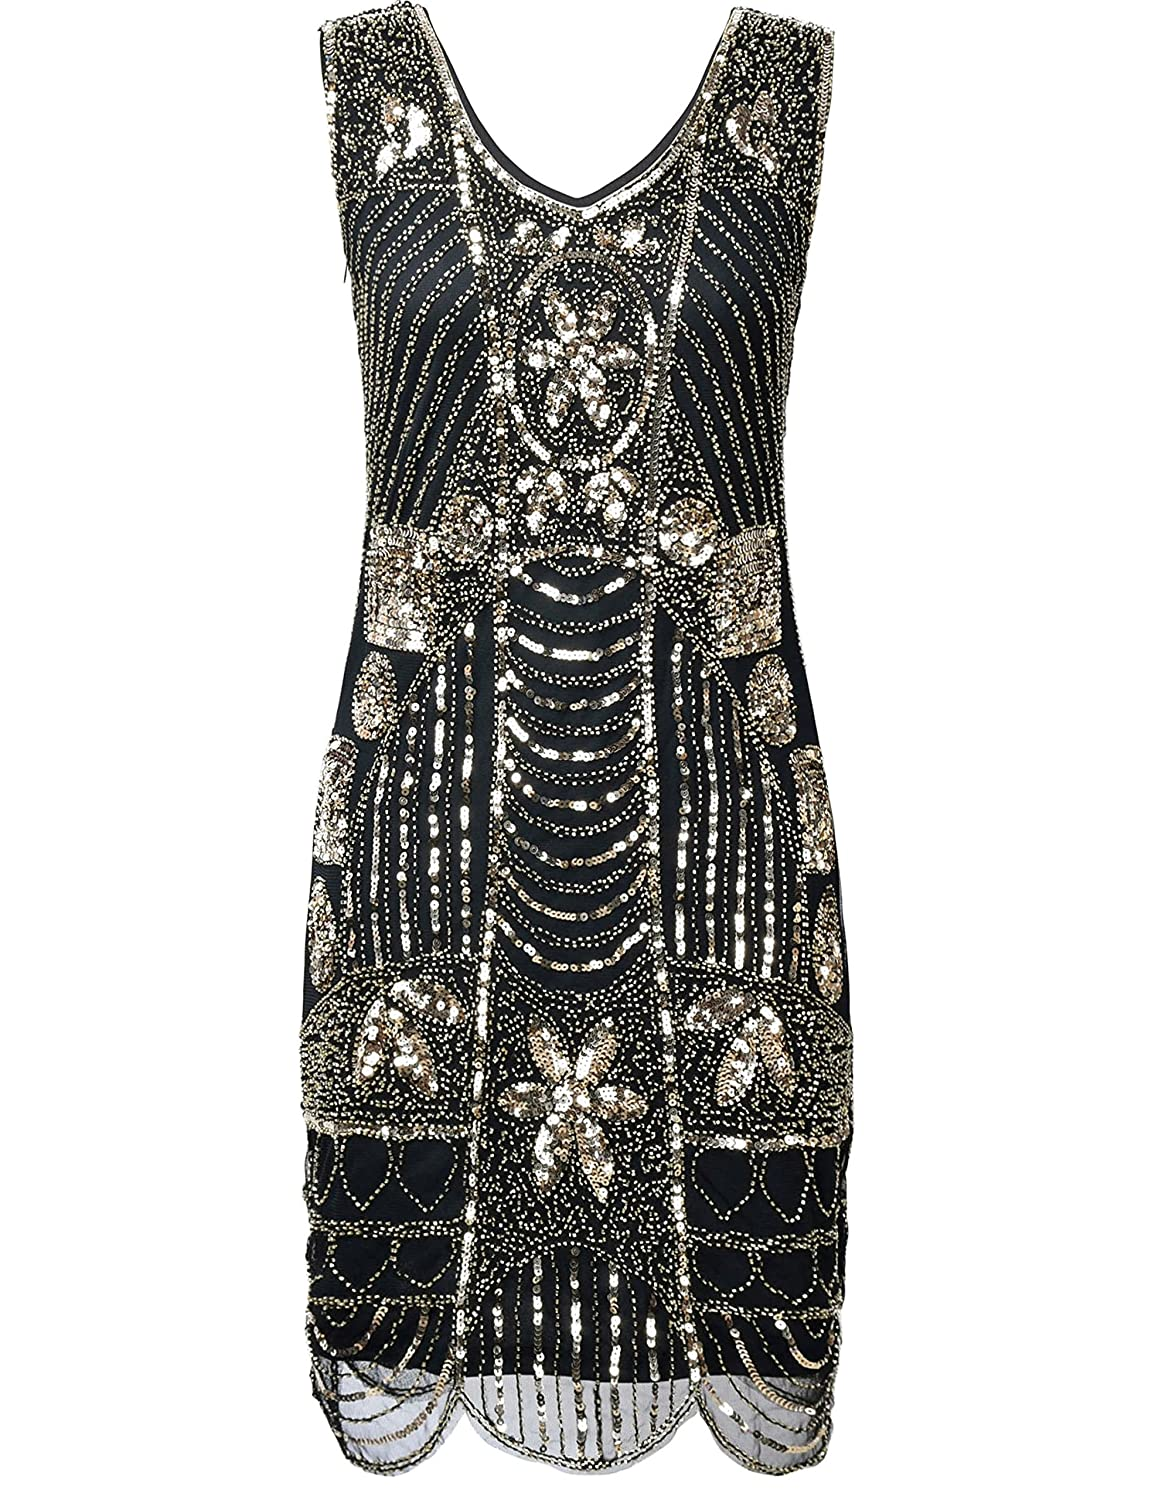 Roaring 20s Costumes- Flapper Costumes, Gangster Costumes 1920s Gatsby Sequin Art Deco Scalloped Hem Cocktail Flapper Dress $45.99 AT vintagedancer.com